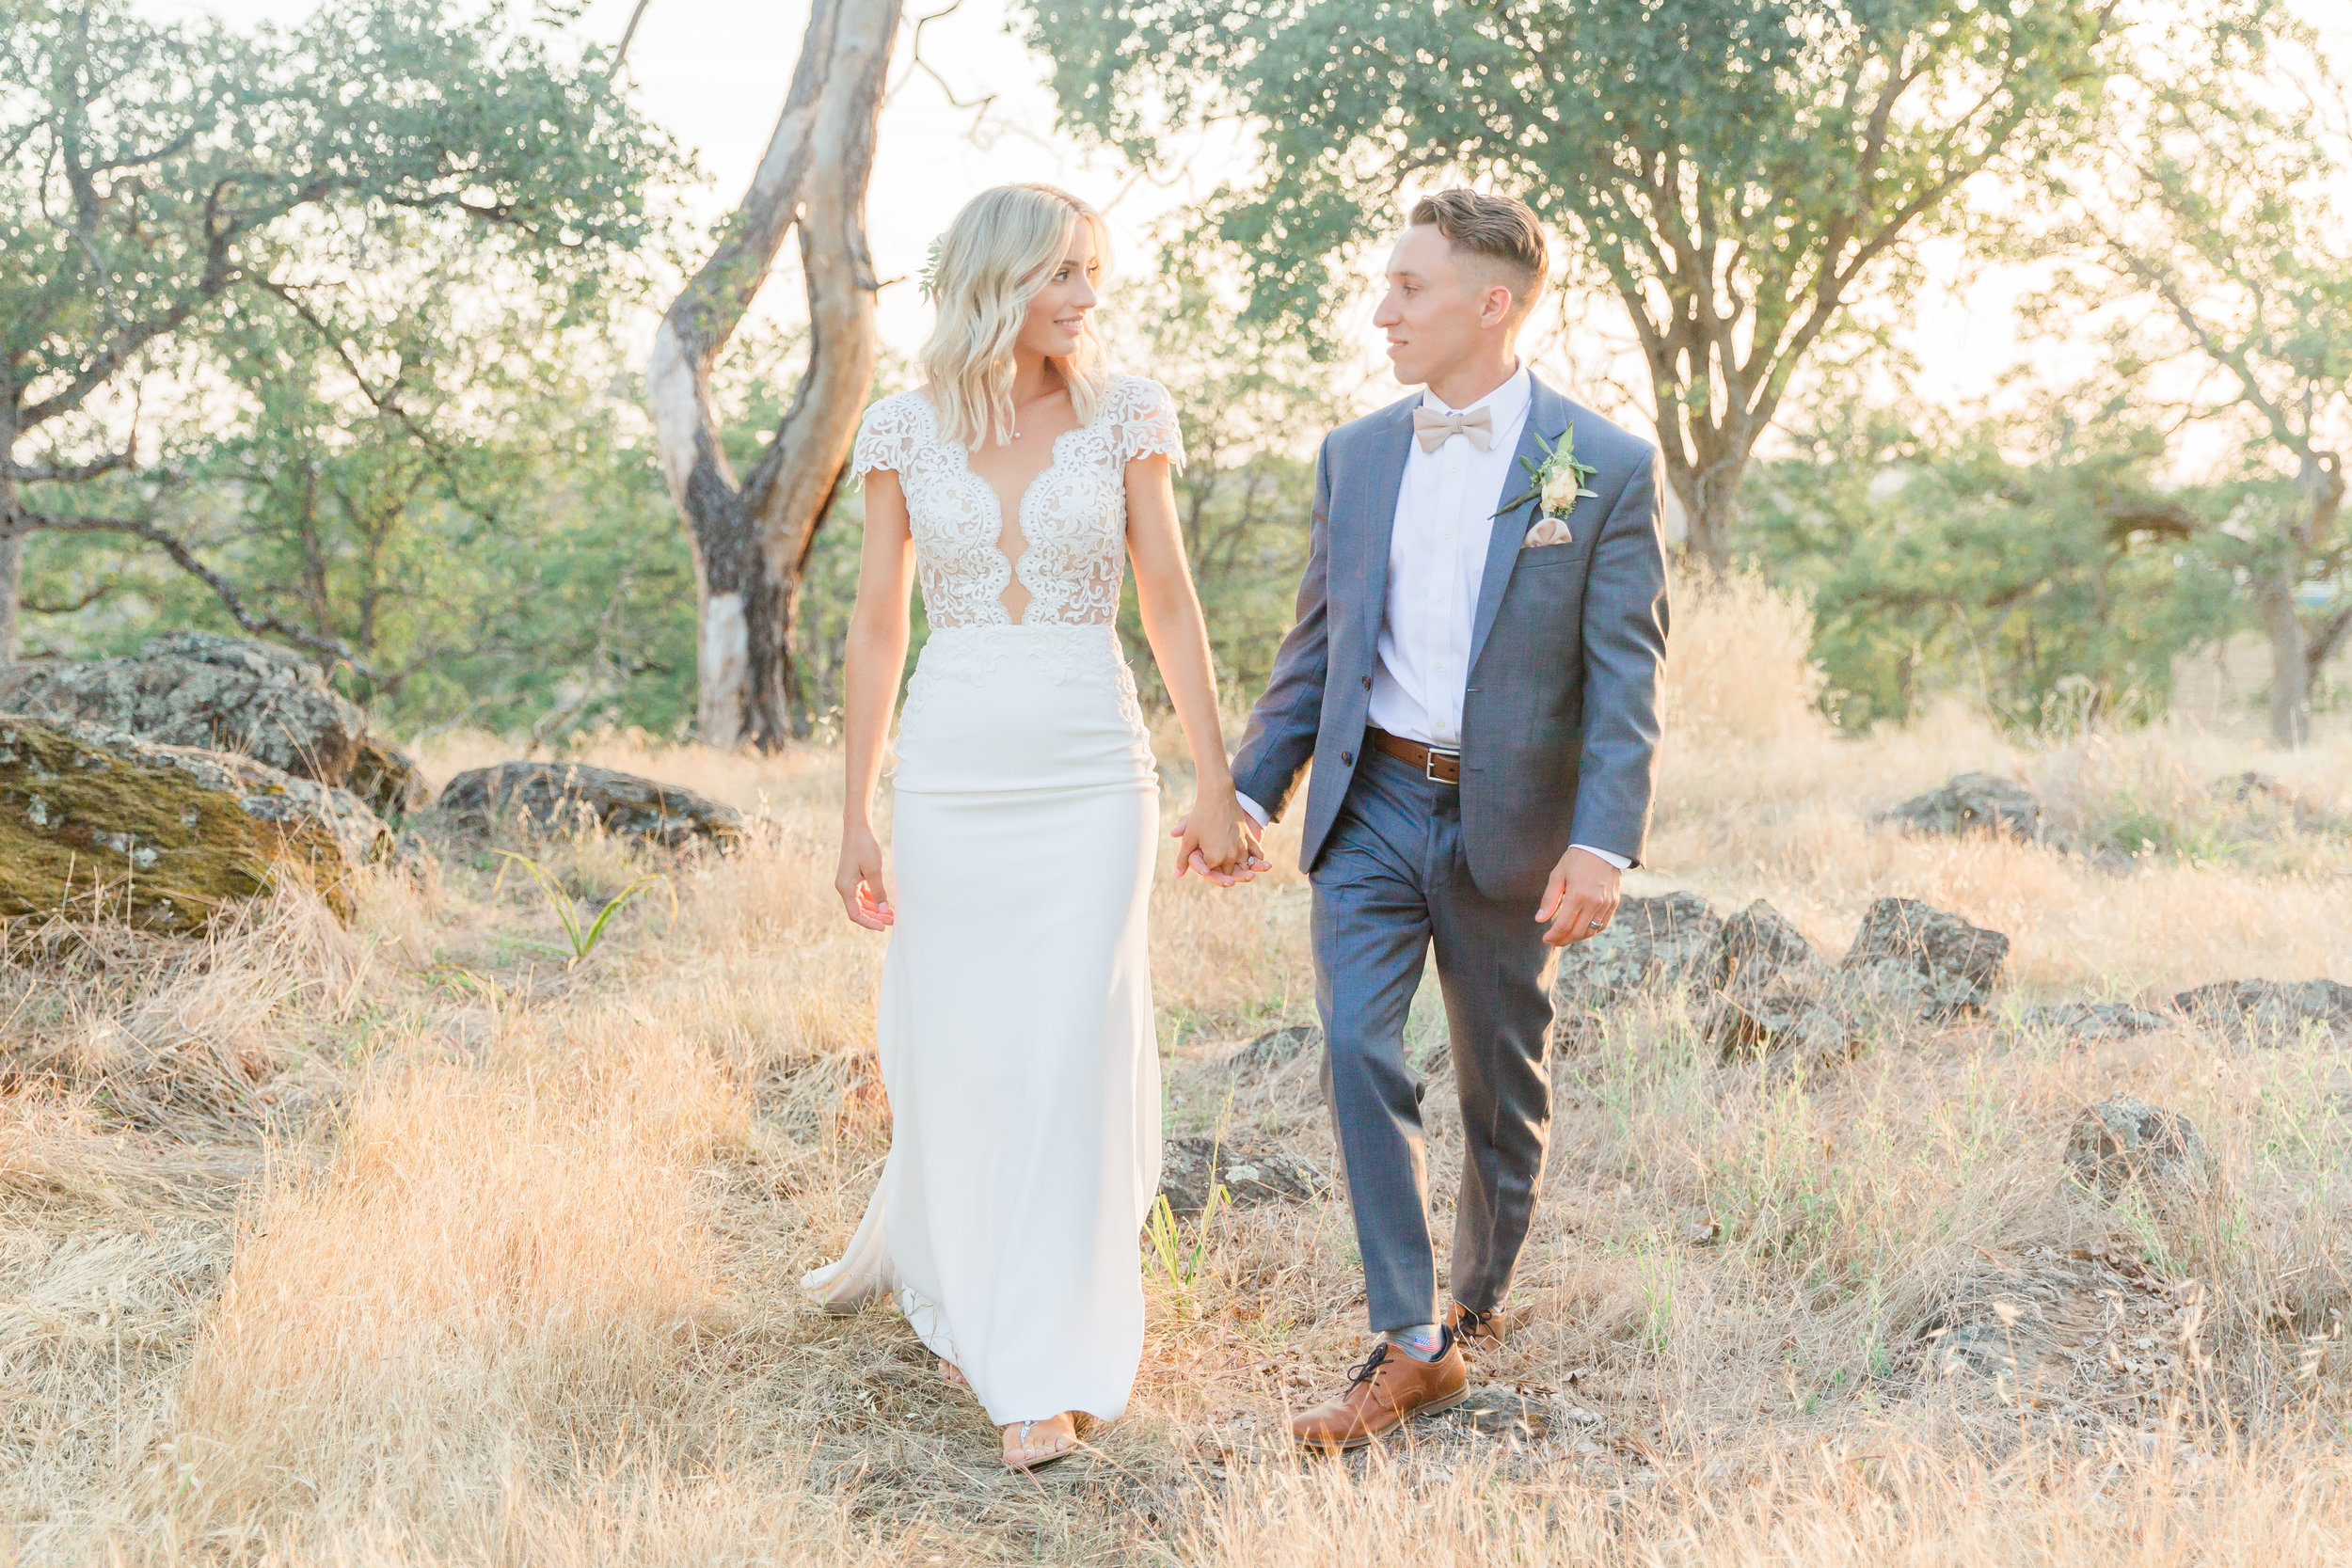 Kaitlynn and Colby - Married - Sneaks - Lauren Alisse Photography-96.jpg